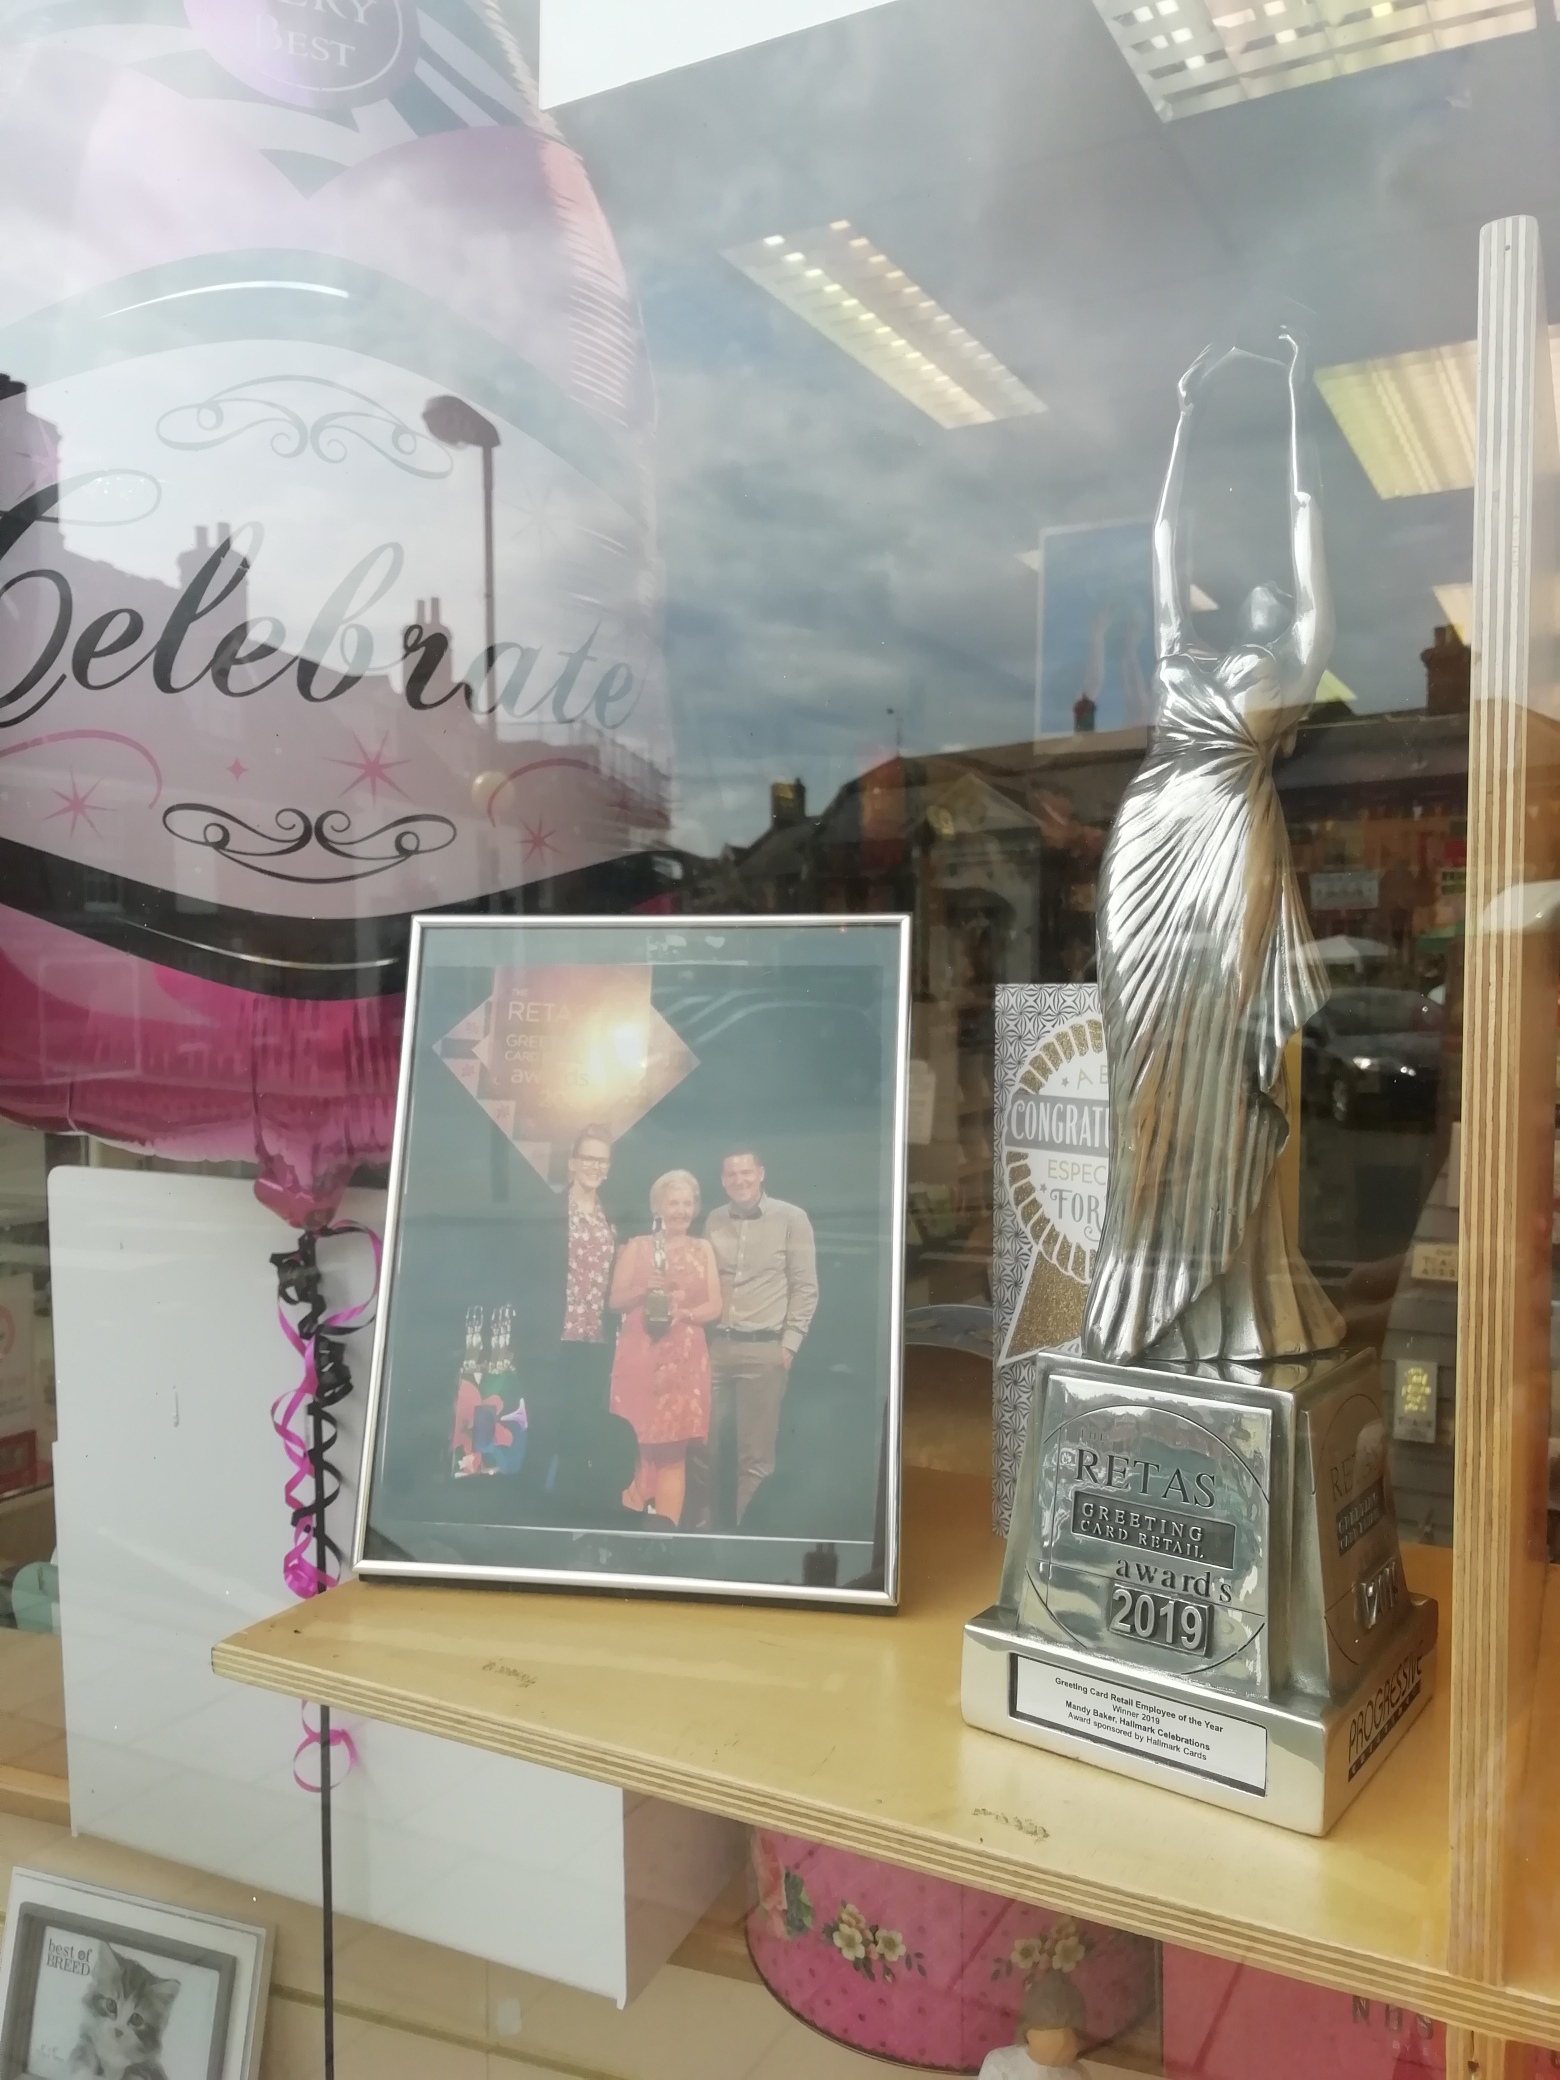 Above: The trophy in pride of place in Celebrations' window in Aylsham together with the photo of Mandy Baker, who won the Best Retail Employee award.